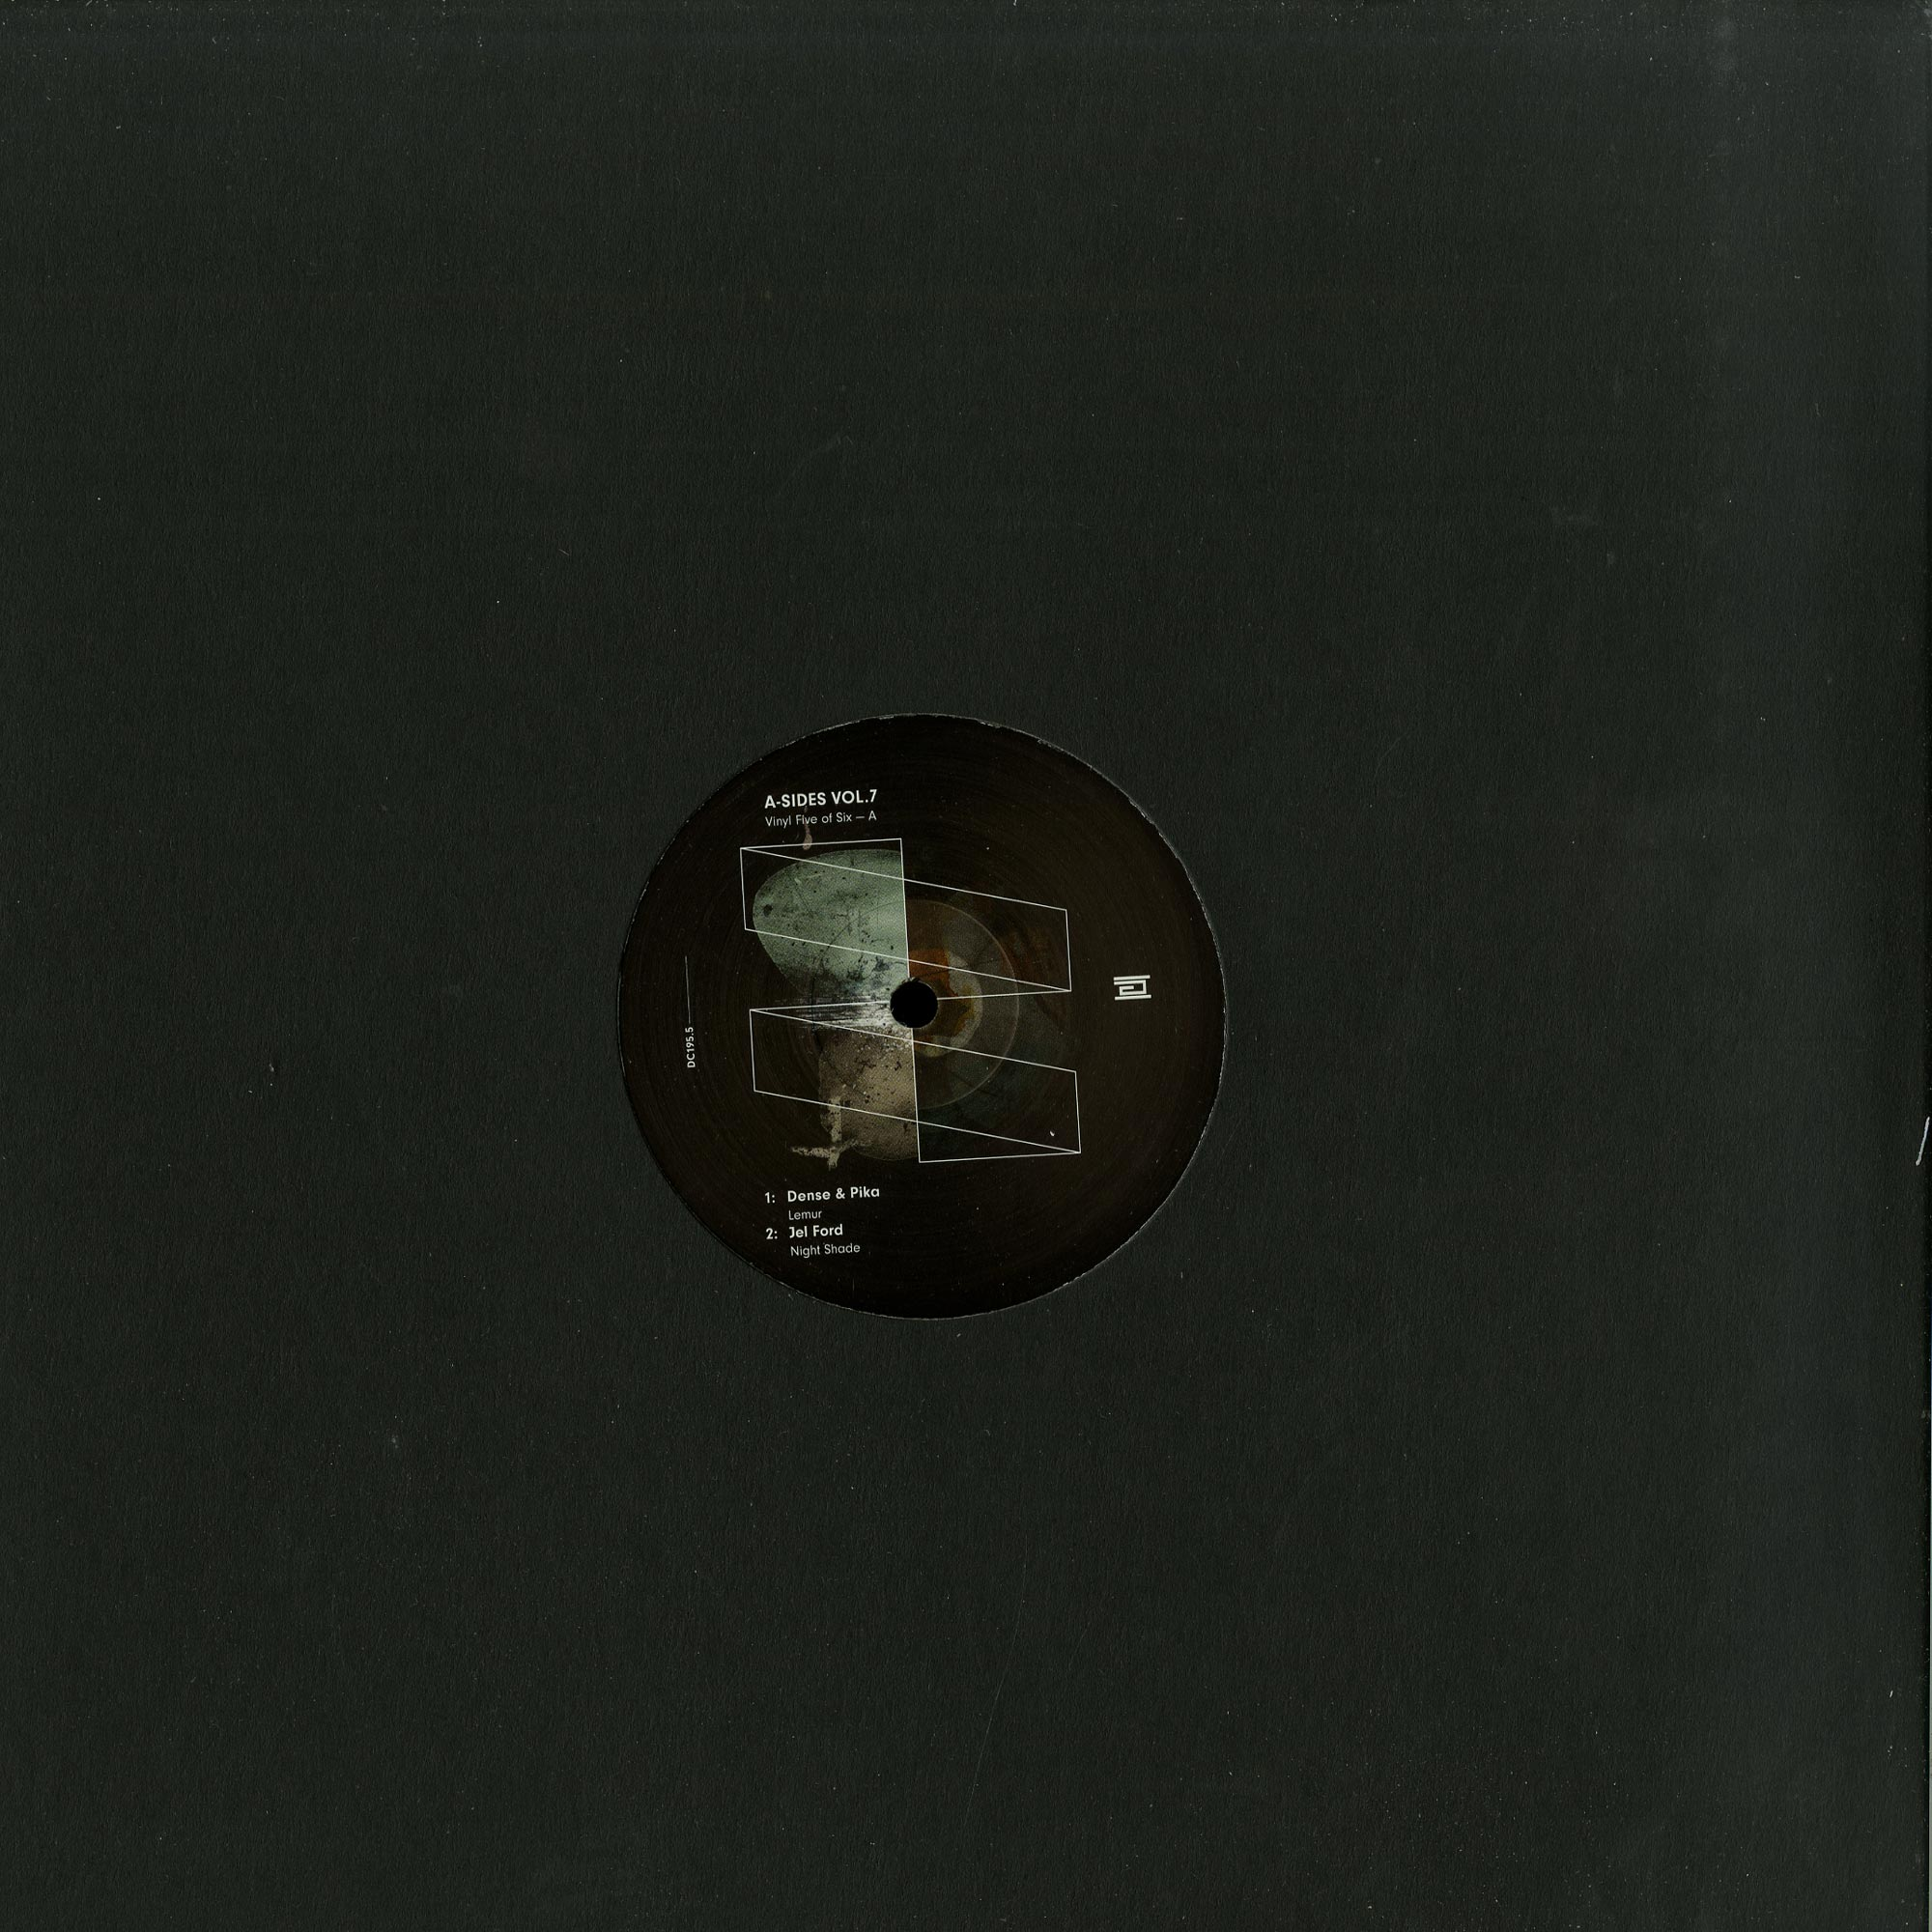 Dense & Pika, Jel Ford, Man With No Shadow - A-SIDES VOL.7 PART 5